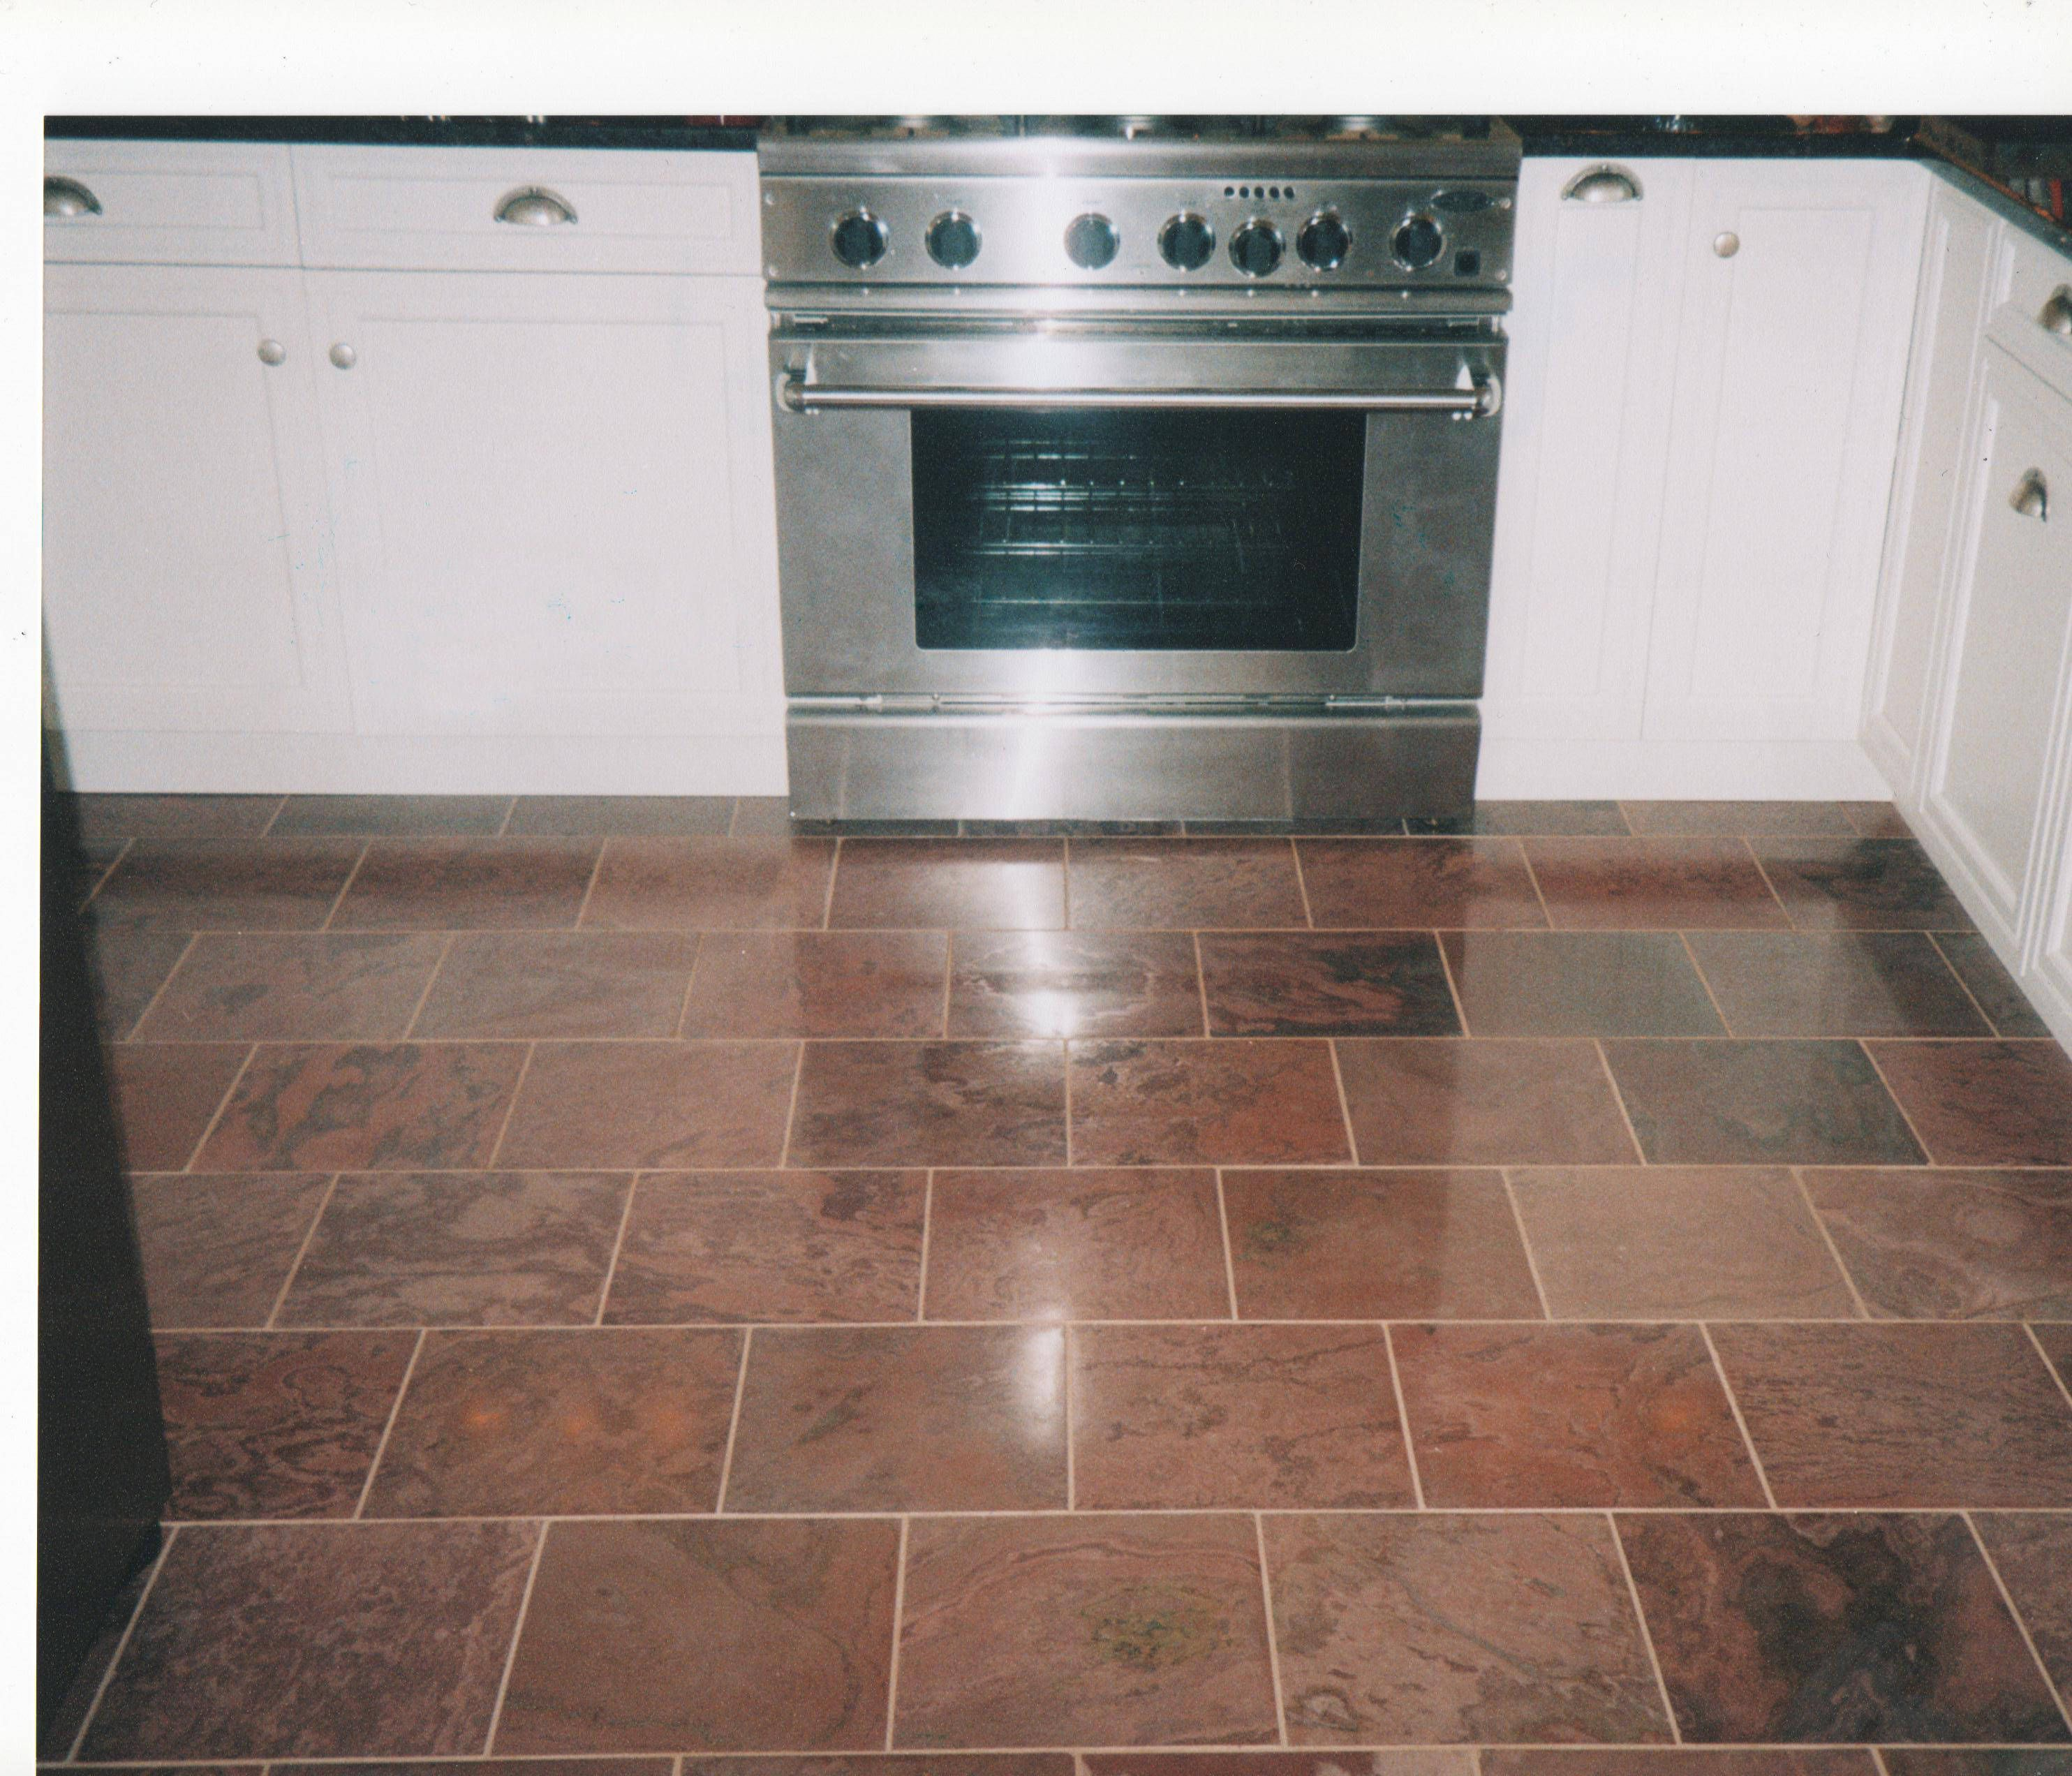 Wooden Kitchen Flooring Tilekitchen Tile Ceramic Ideas Tiles And For Your  Home Floor Amp Planks